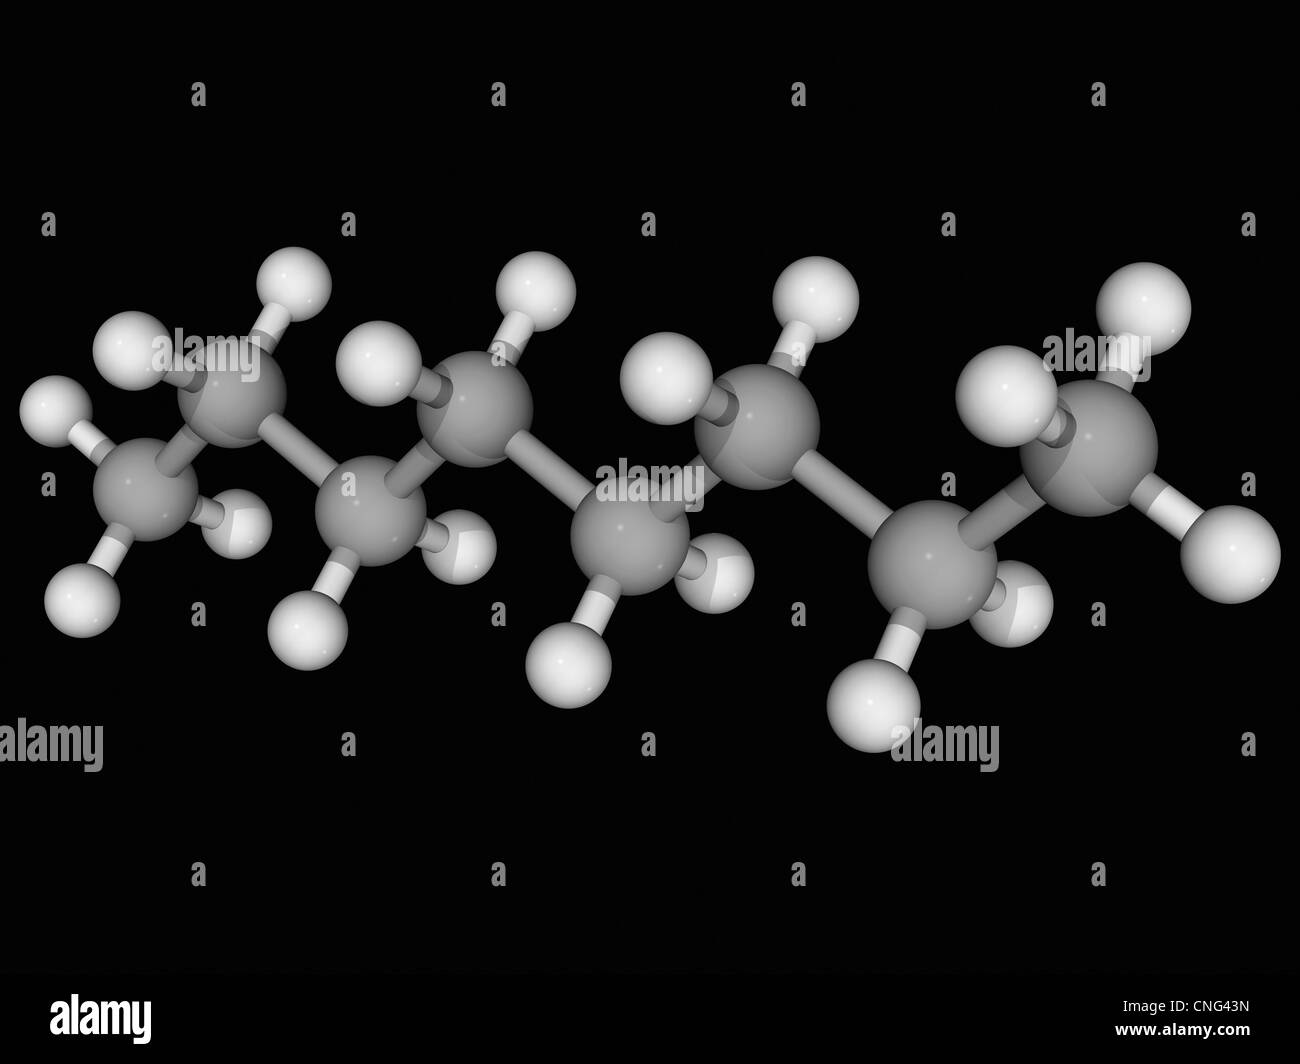 Octane Molecule Download preview image